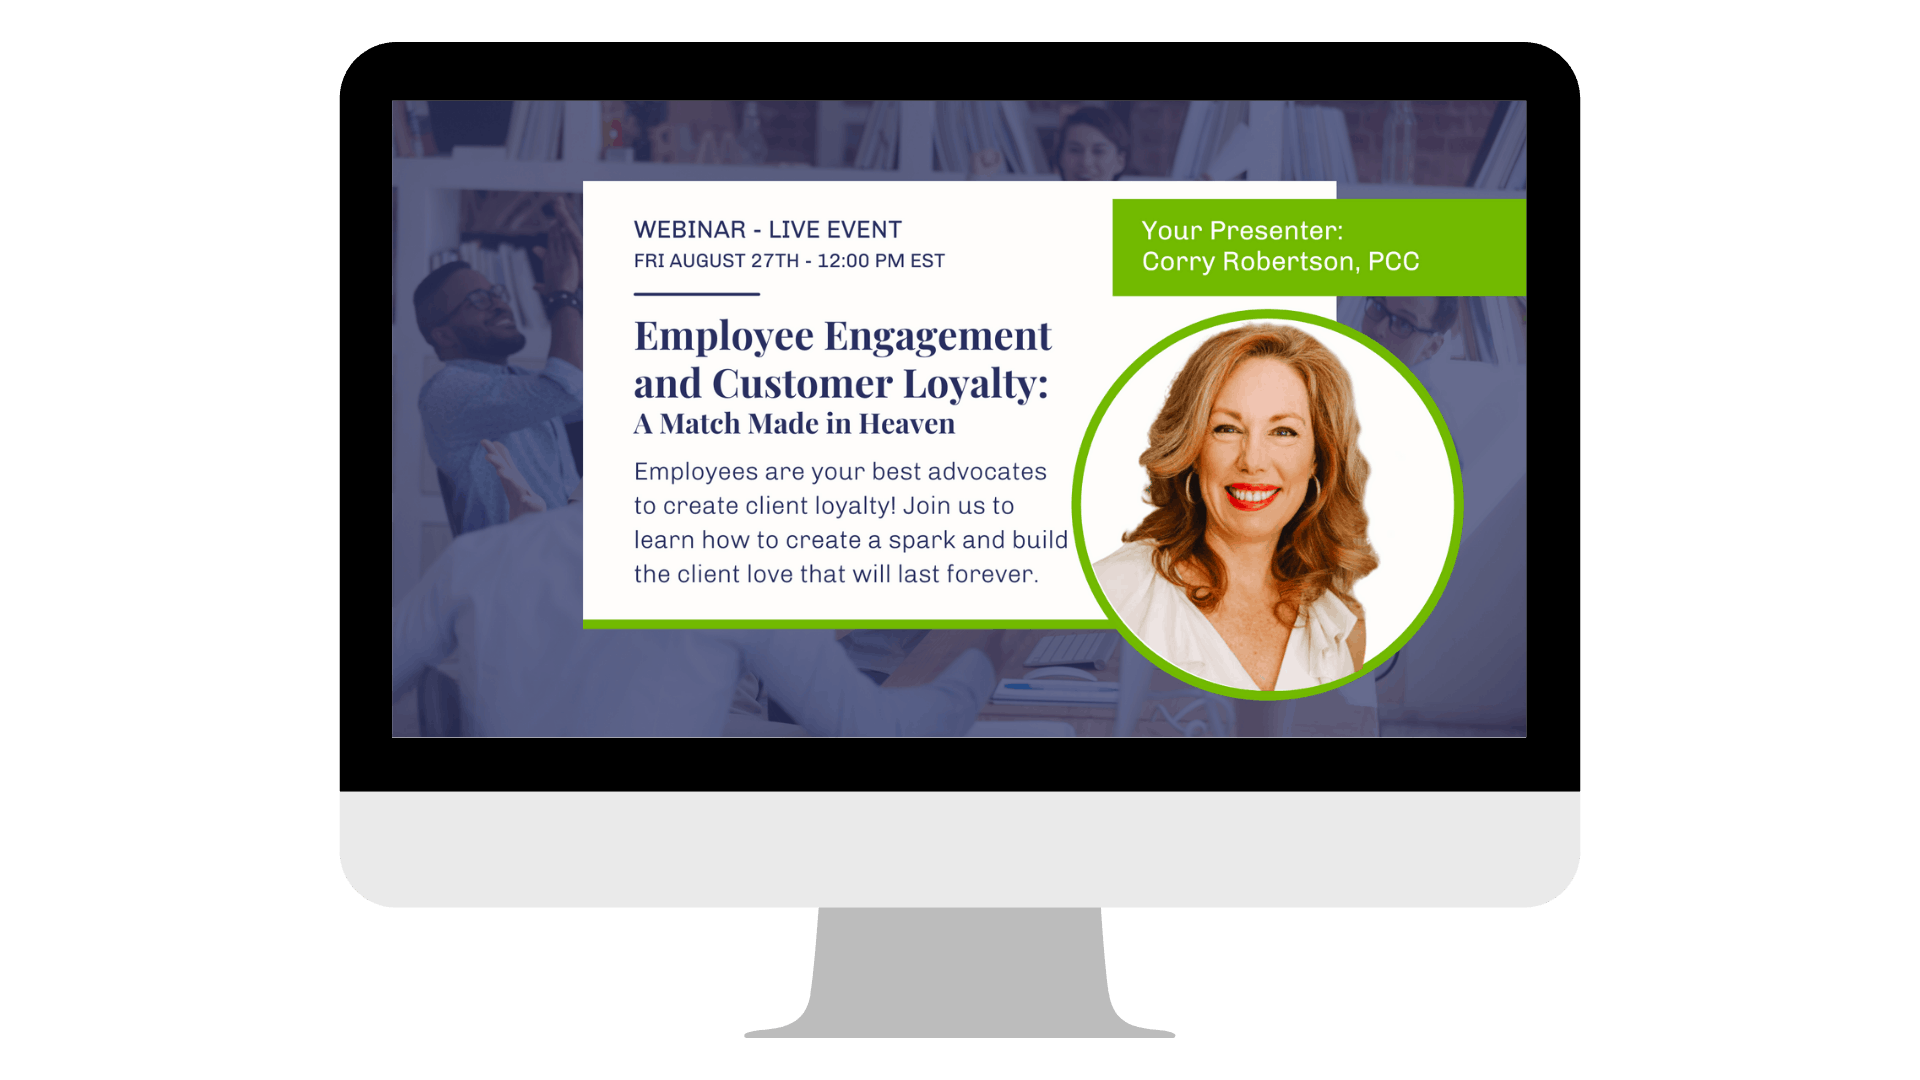 Employee Engagement and customer loyalty